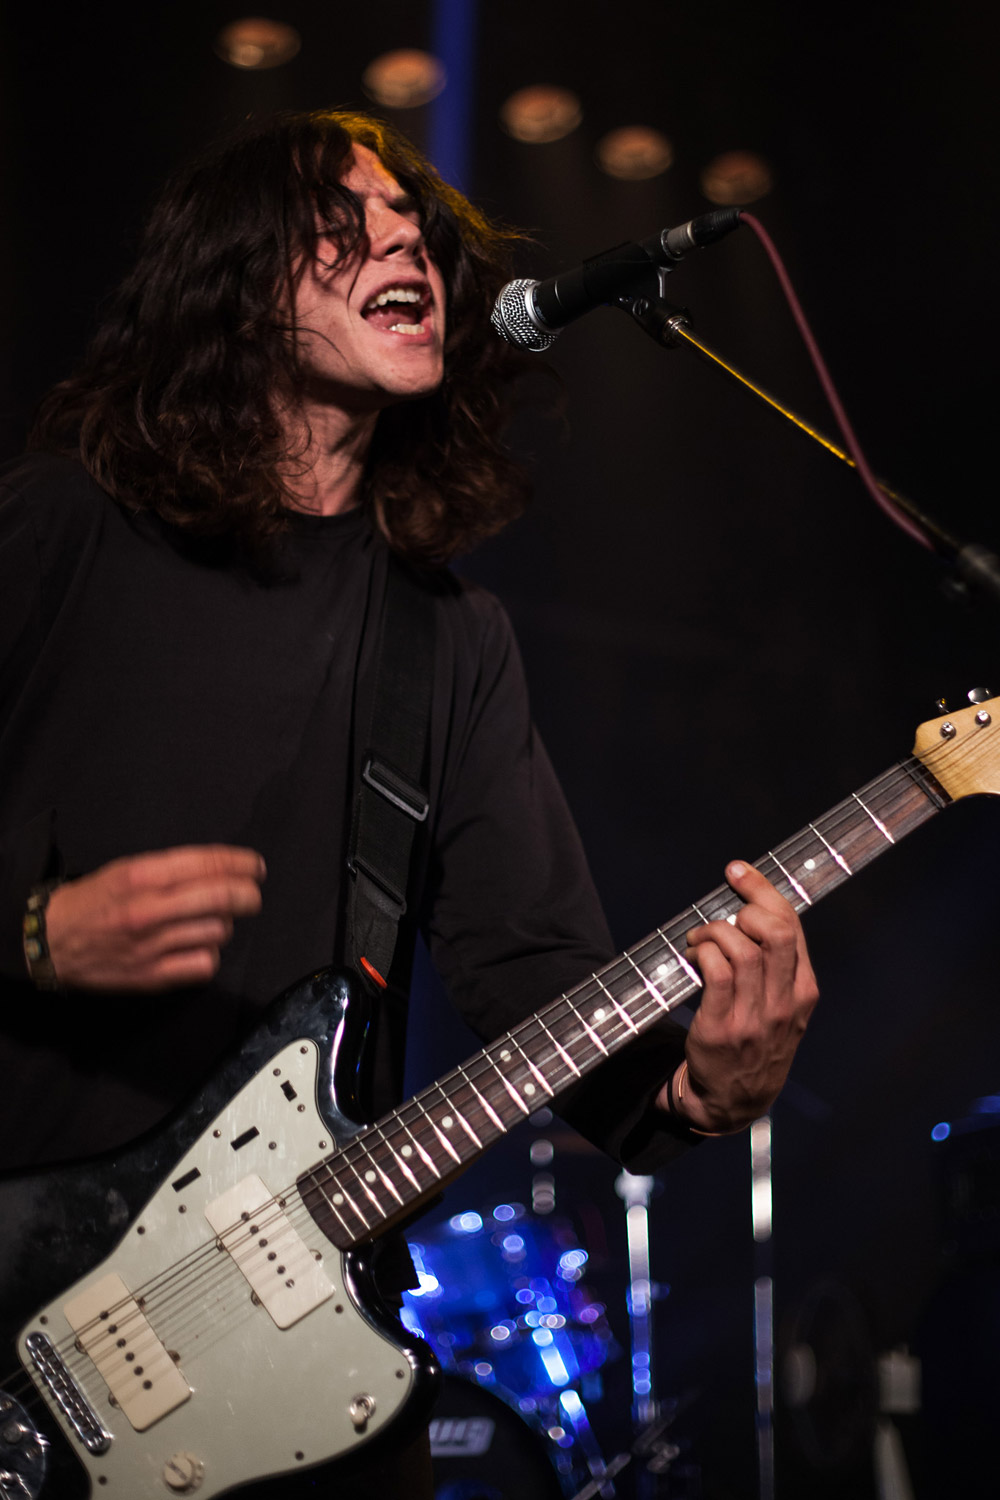 Wytches @ ULU, London 25/06/14